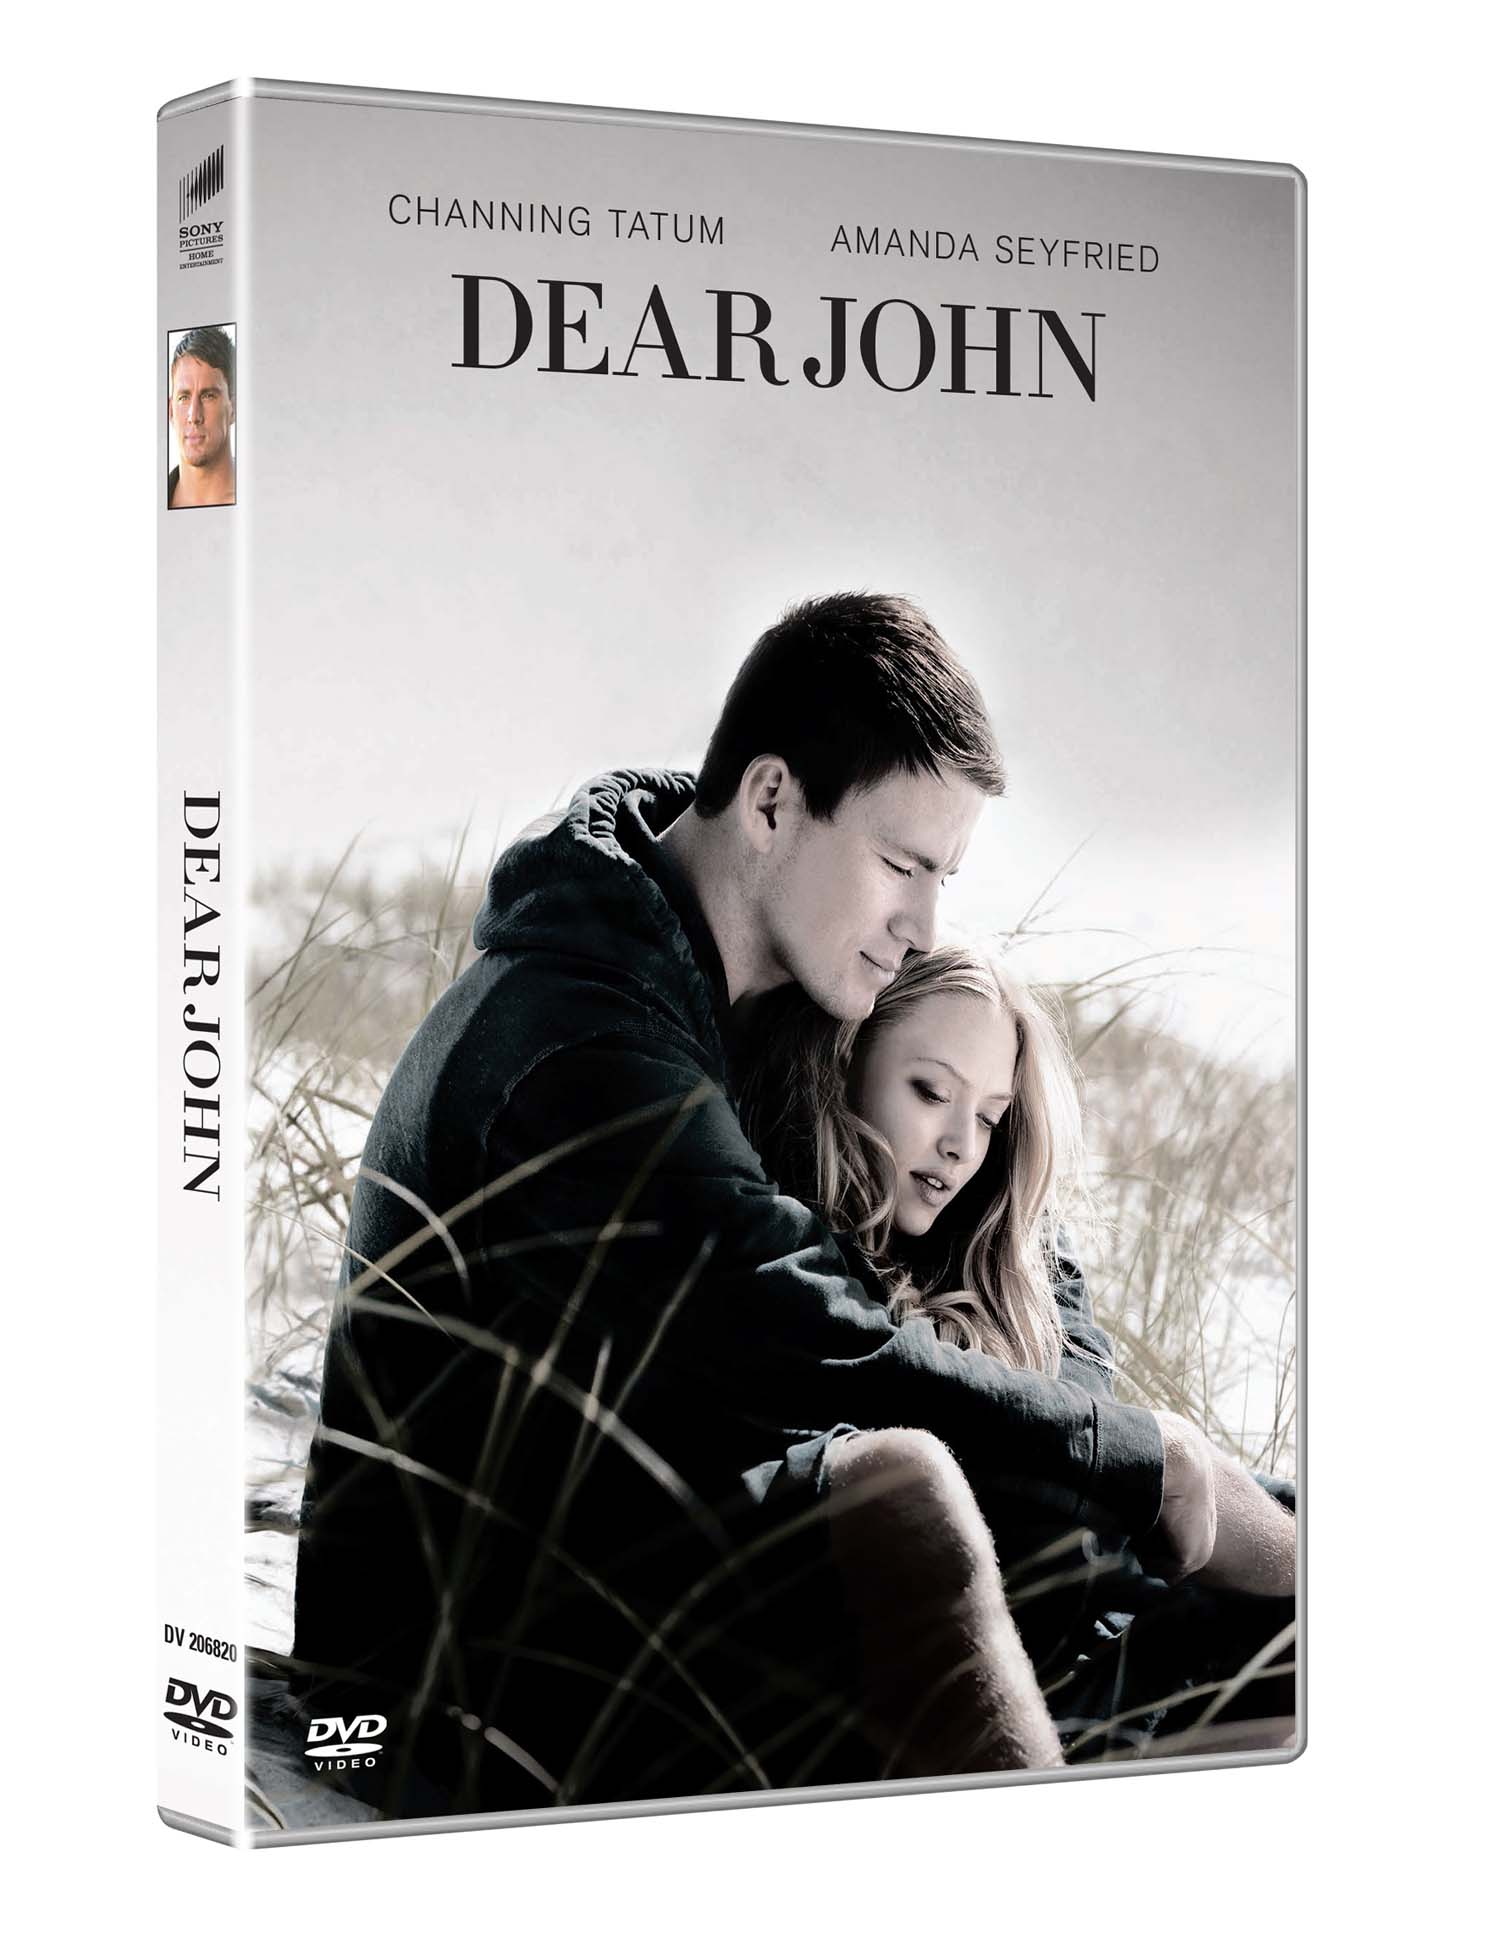 DEAR JOHN (SAN VALENTINO COLLECTION) (DVD)